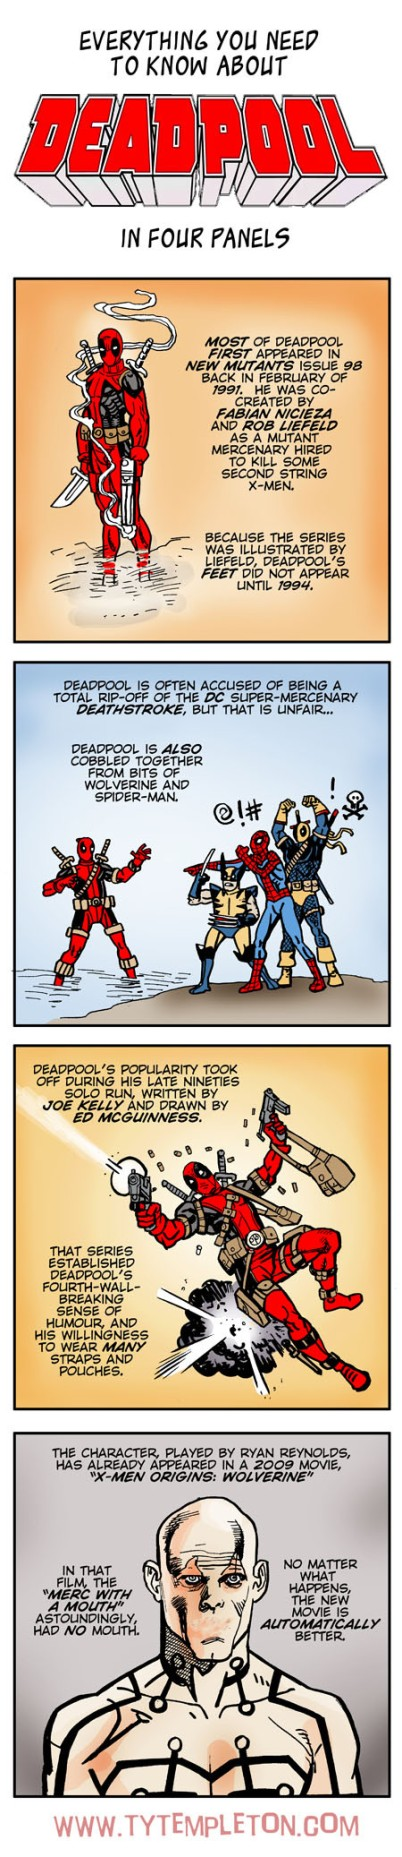 deadpool-four-panels-websize